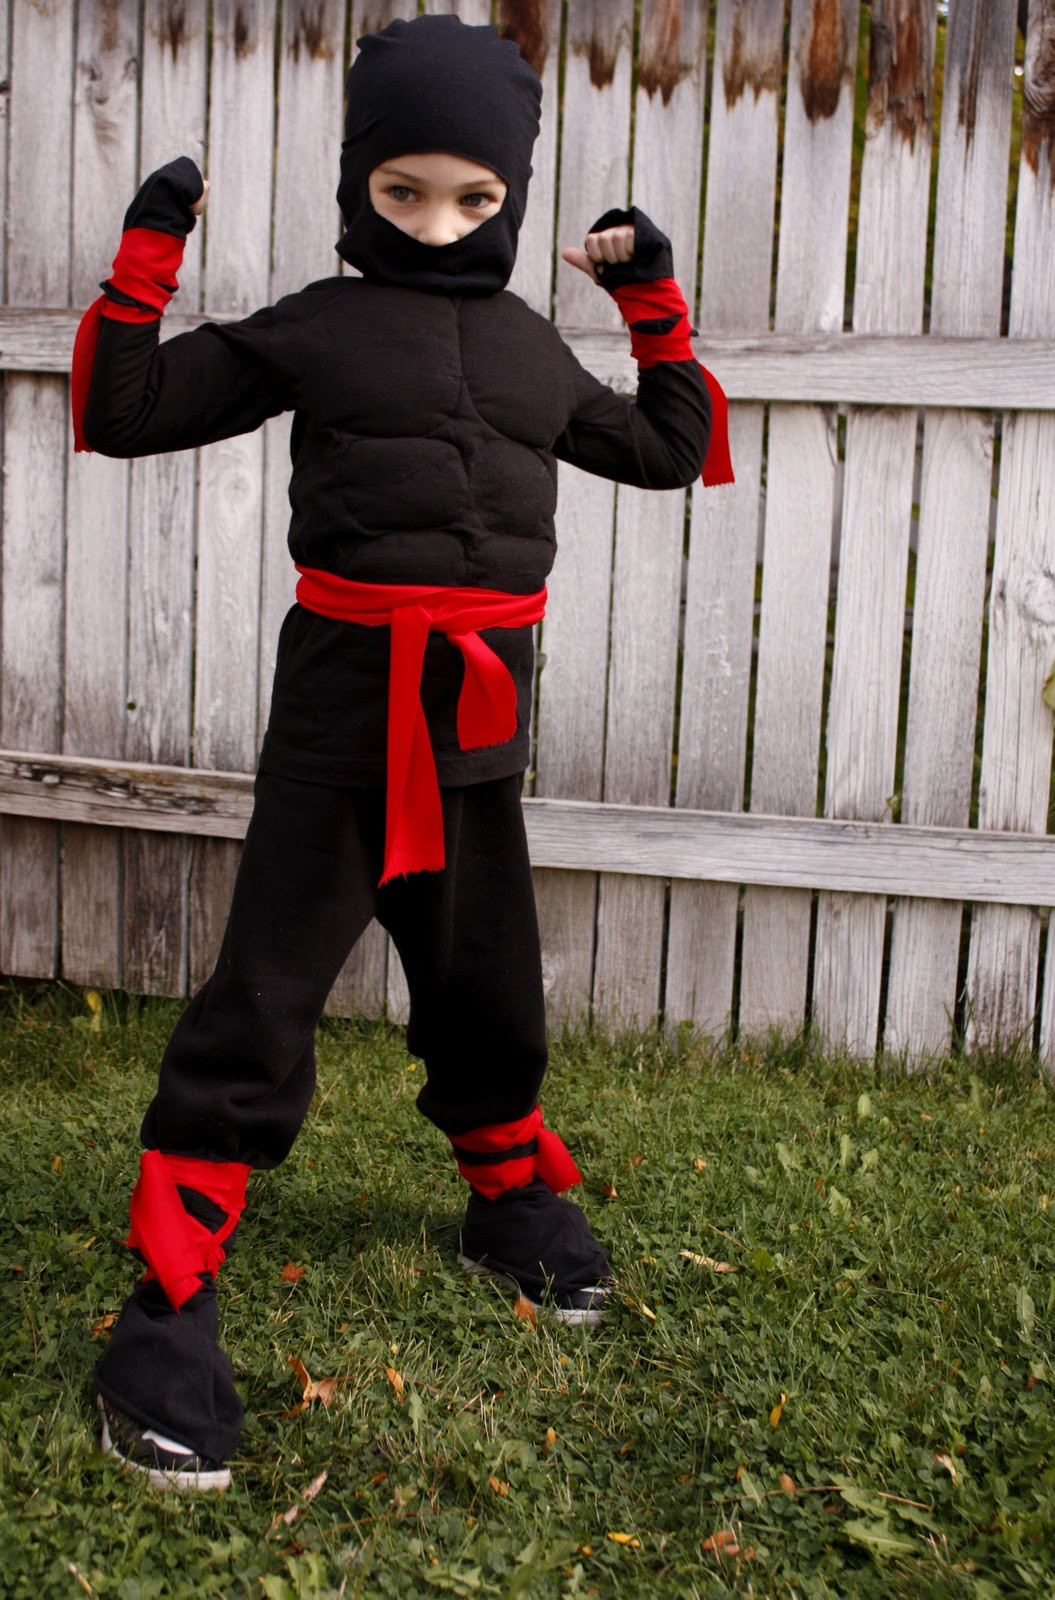 Best ideas about DIY Ninja Mask . Save or Pin ninja costume Now.